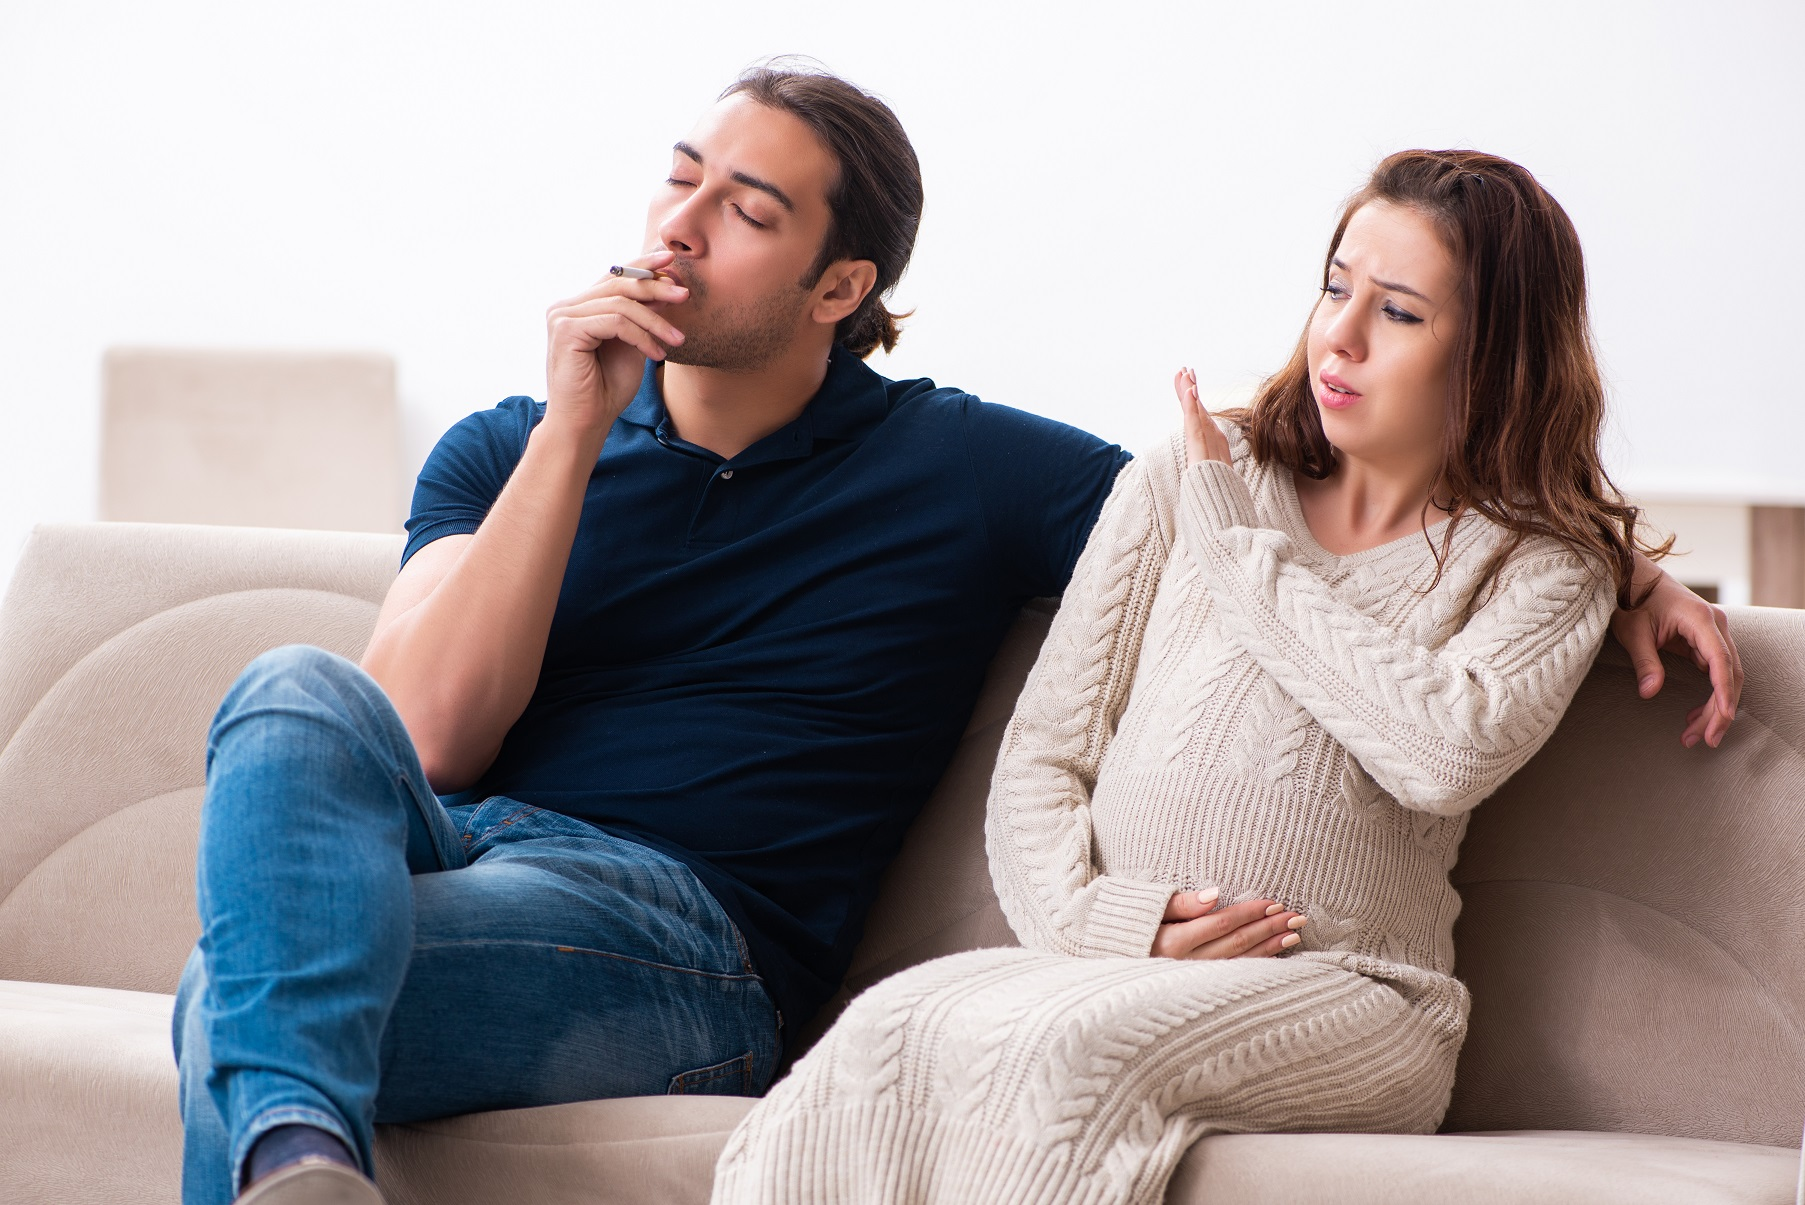 New Study: Smoking Marijuana During Pregnancy May Double Your Baby's Risk of Autism